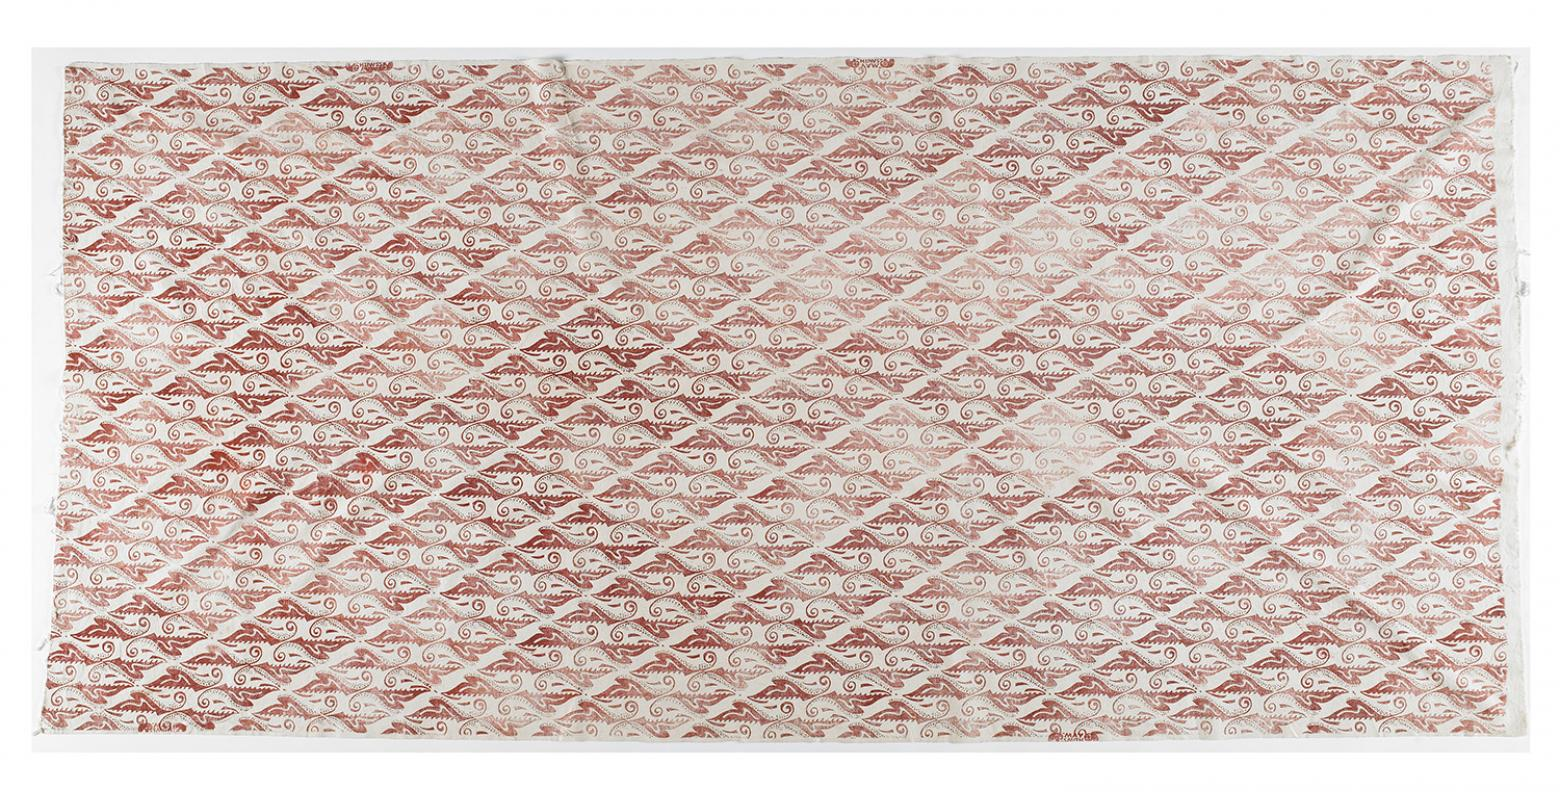 A piece of off-white material with a red pattern stamped on it